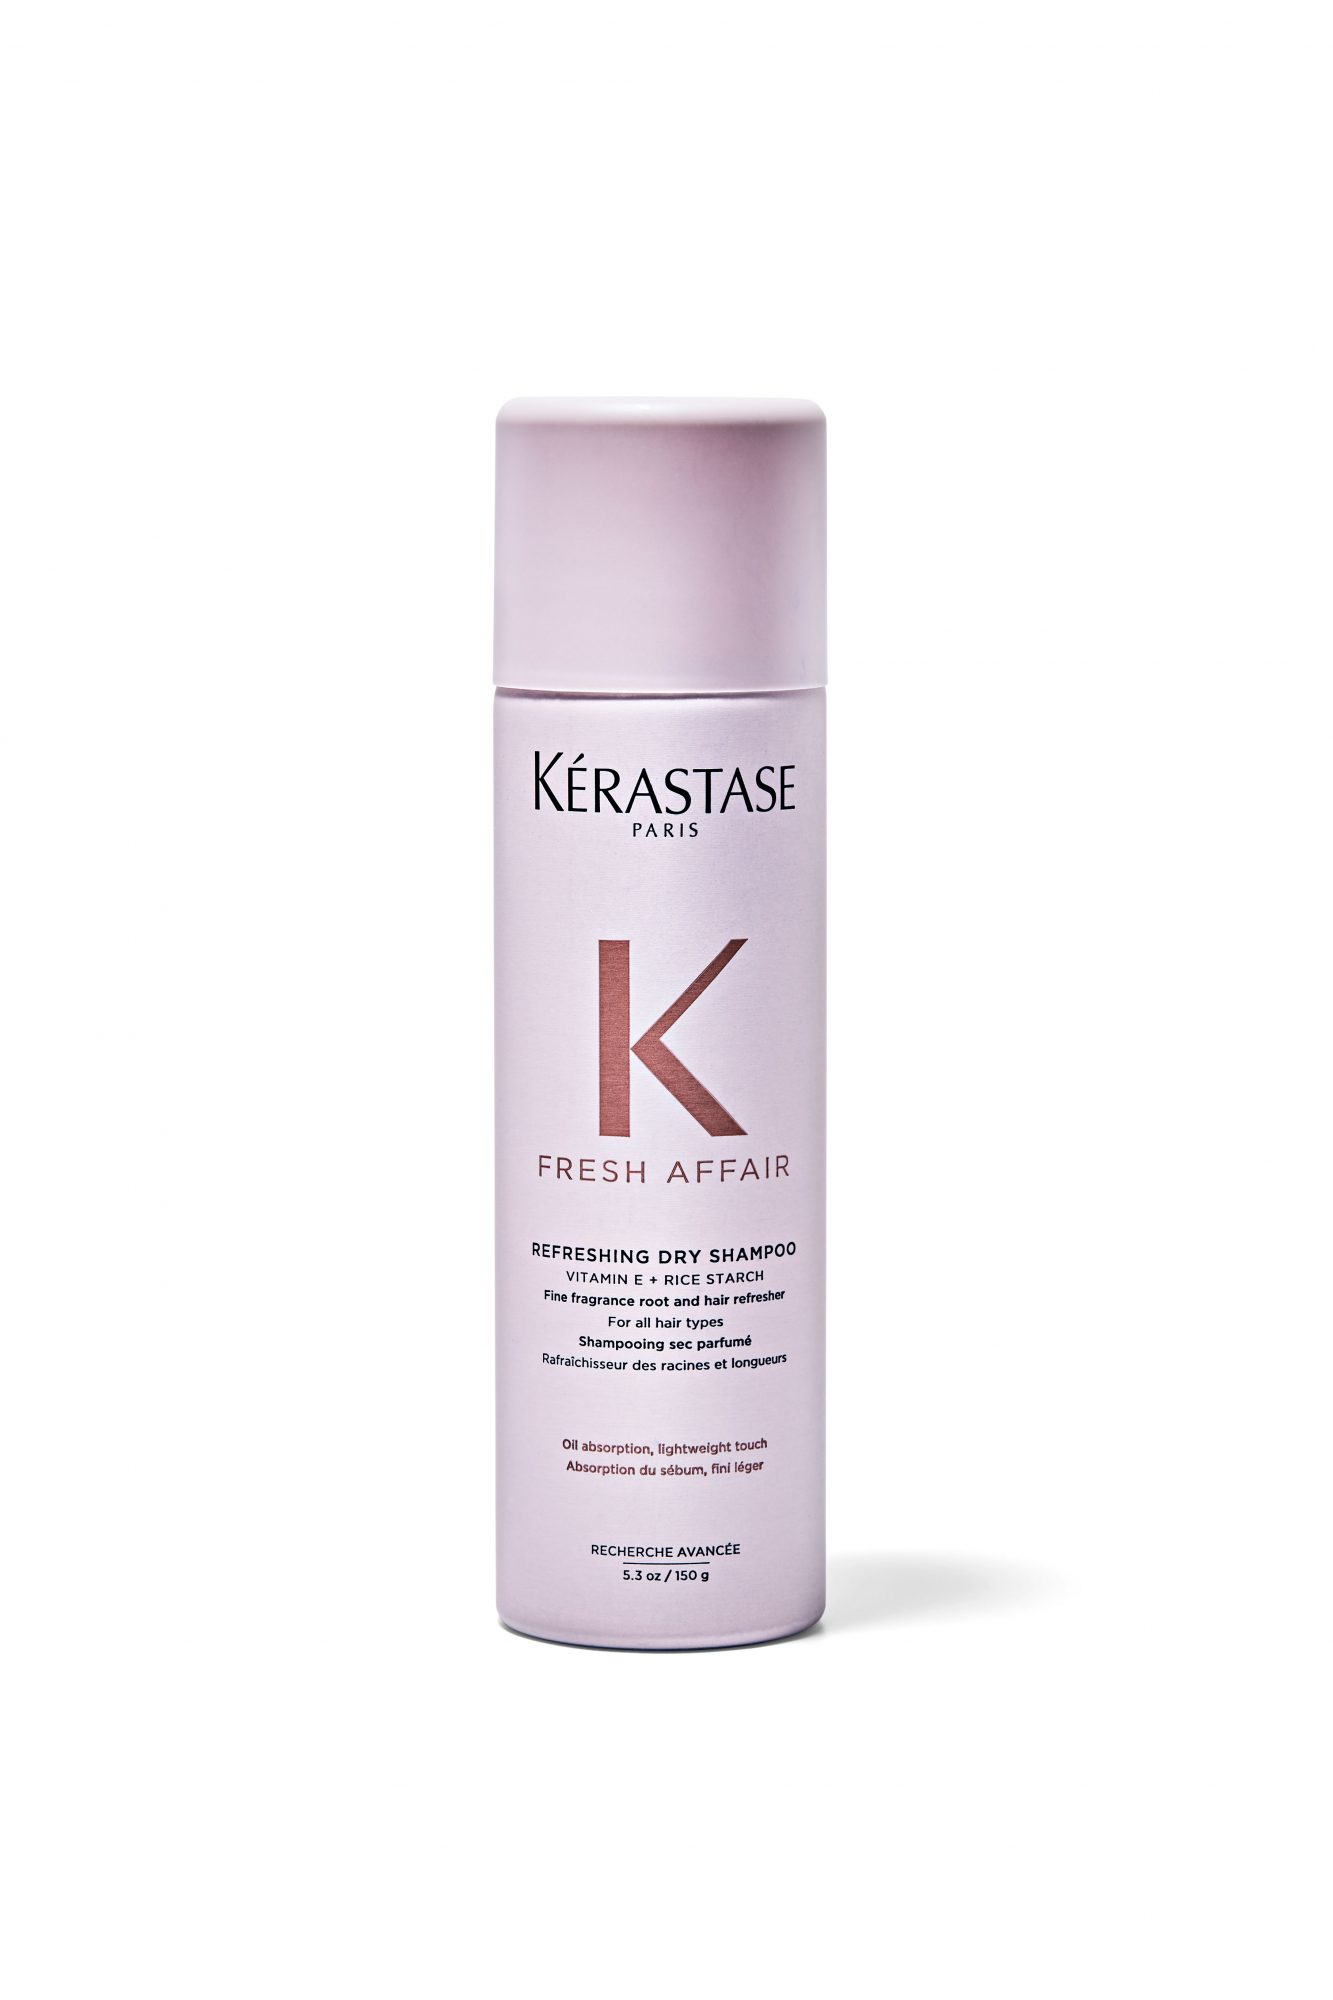 Kérastase Fresh Affair Refreshing Dry Shampoo